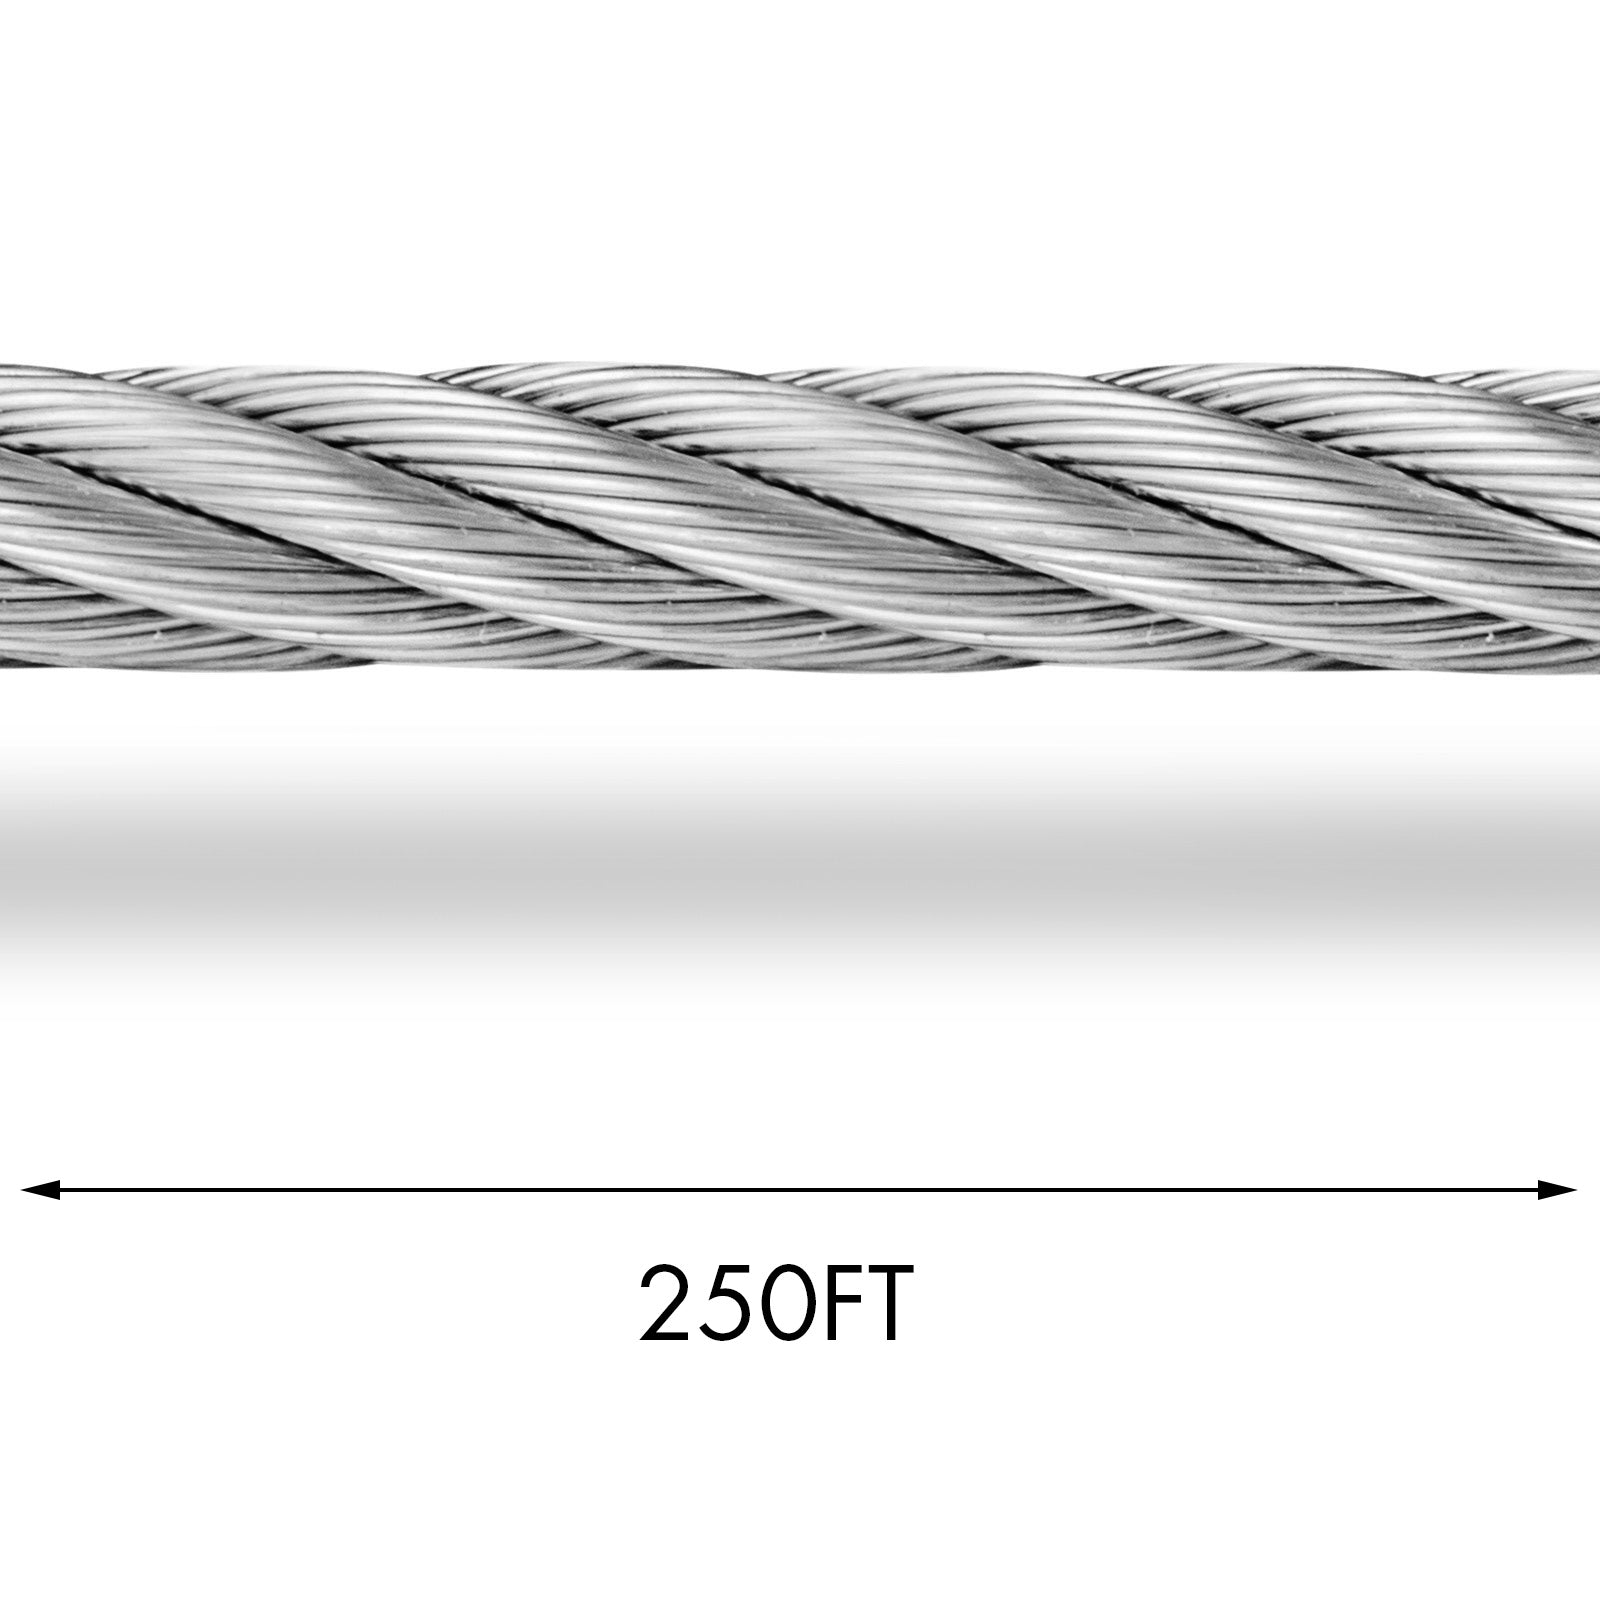 T316 Stainless Steel Cable Wire Rope,3/16,7x19,250ft